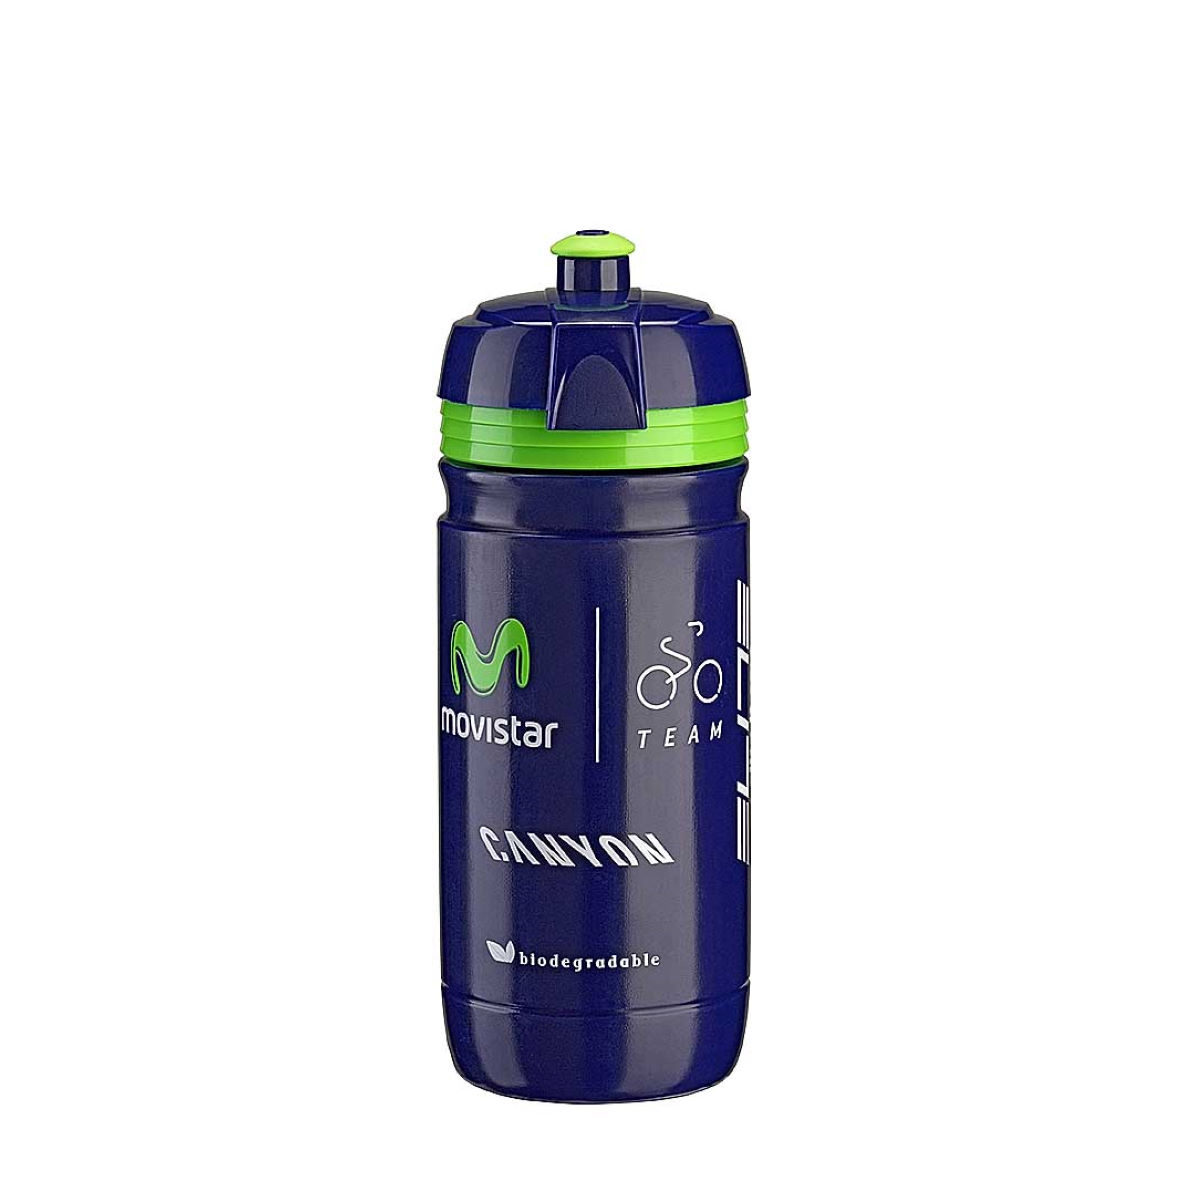 Bidon Elite Corsa Team (550 ml, 2014) - 550ml MOVISTAR Bidons